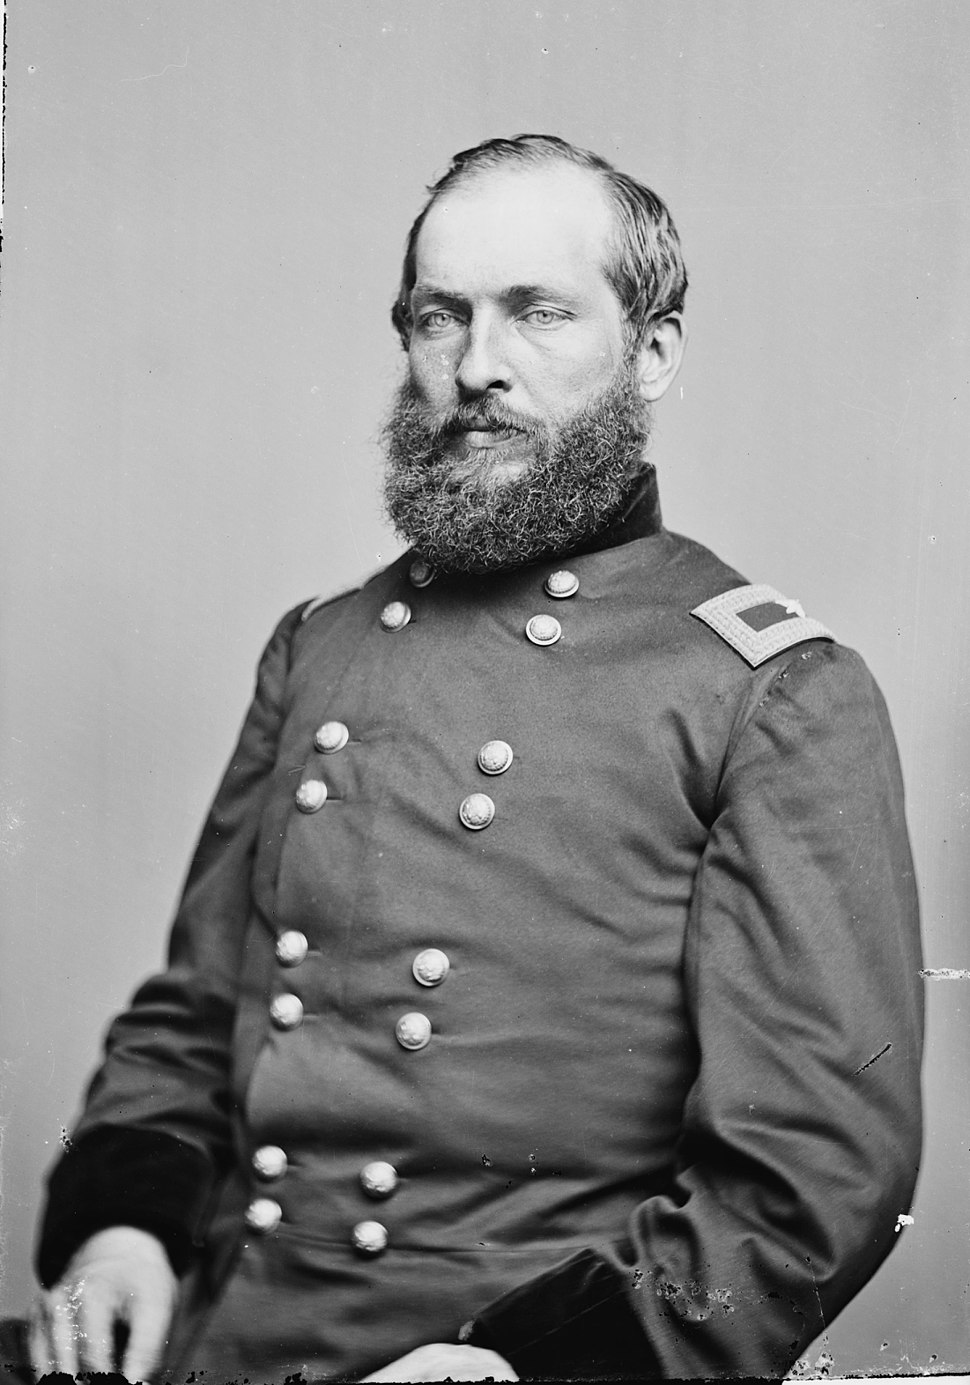 General James Garfield - Brady-Handy